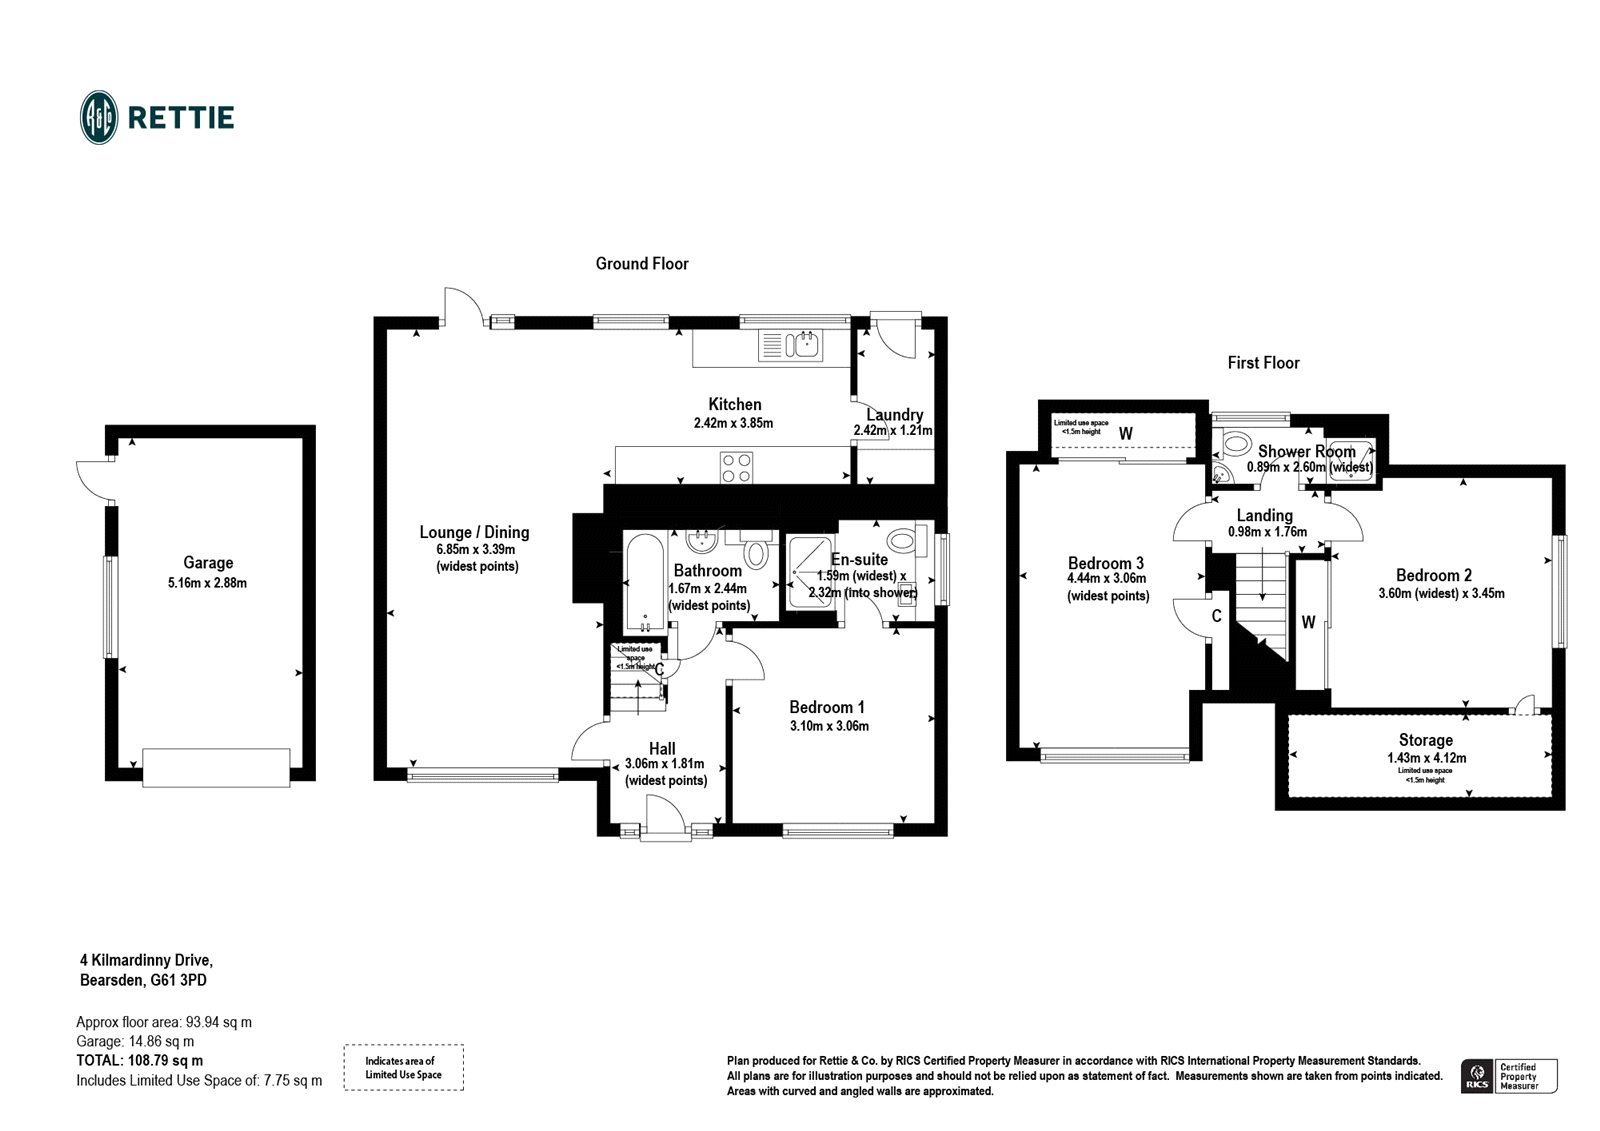 Floorplans for Kilmardinny Drive, Bearsden, Glasgow, G61